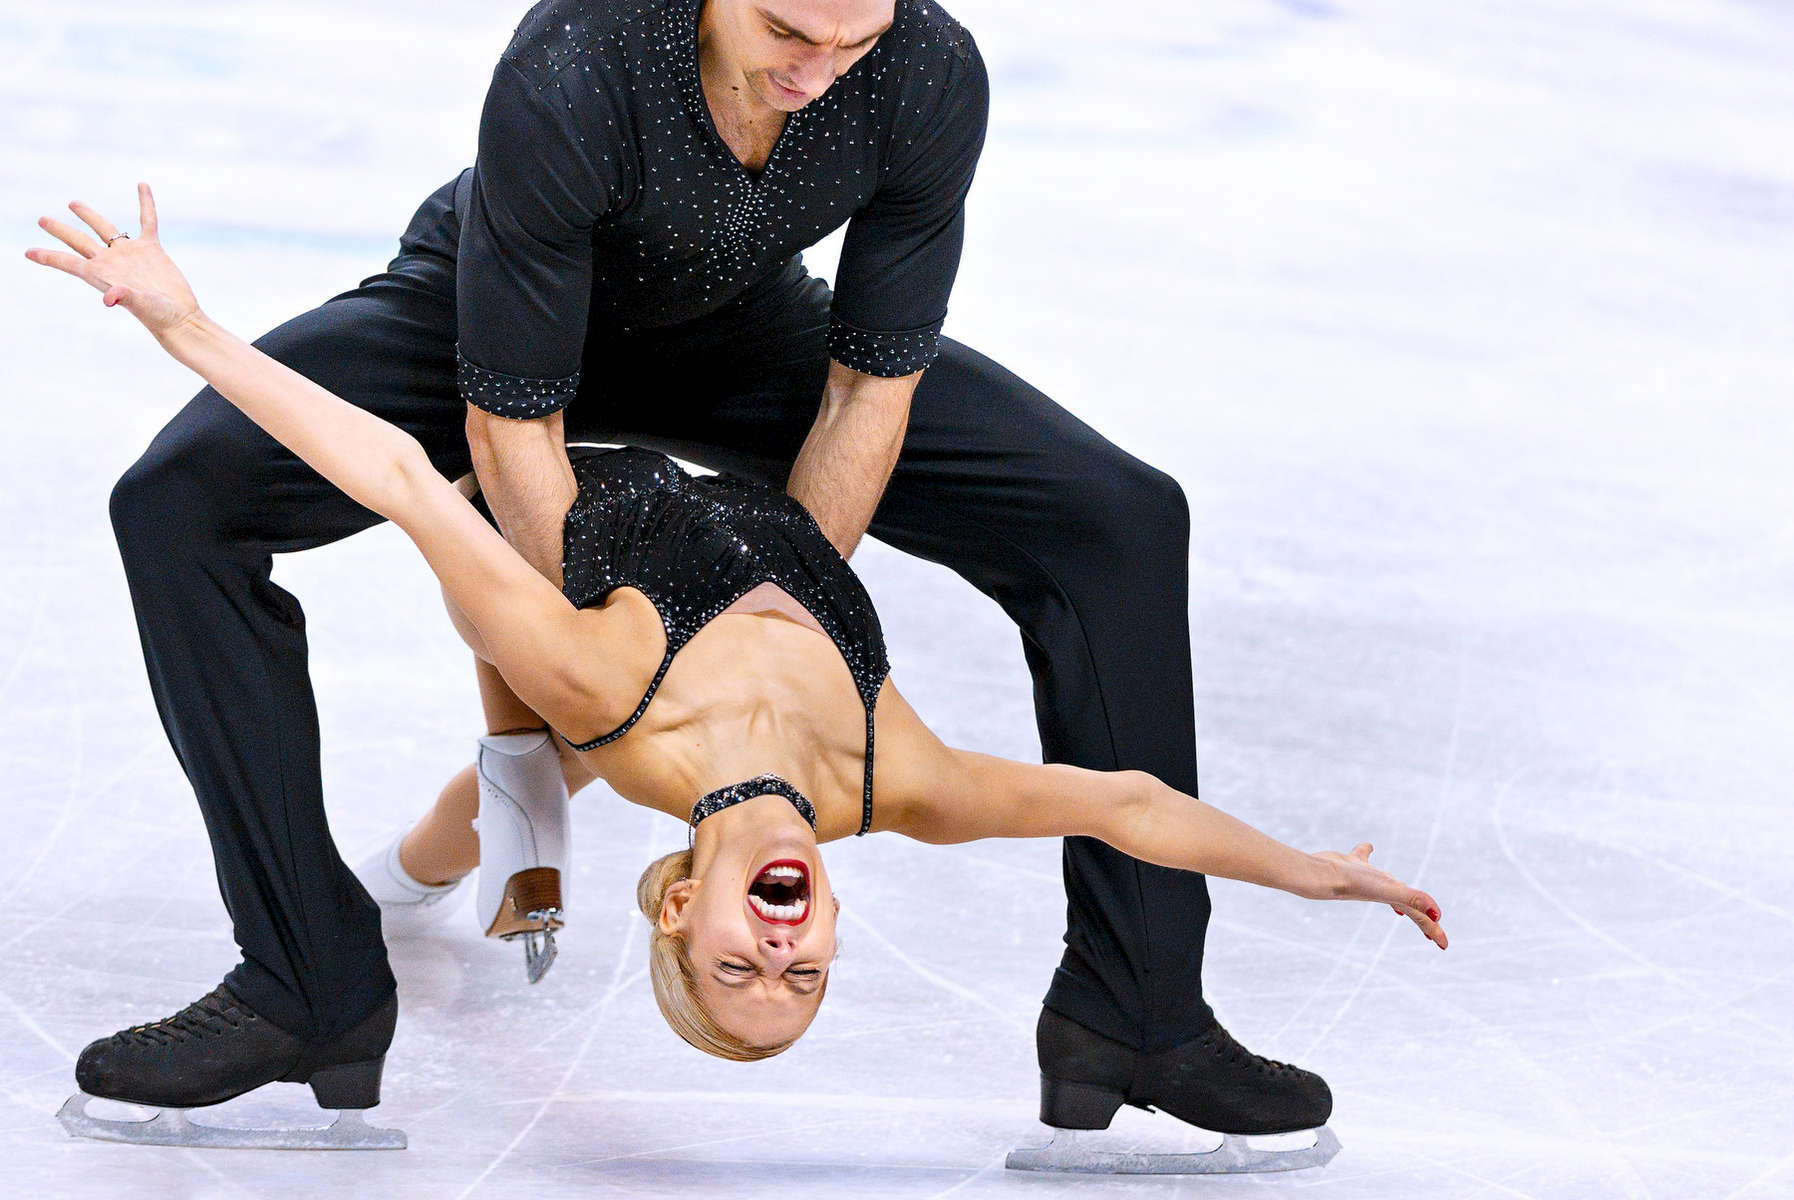 Third Place | Multiple PhotosJerry Wolford, News & RecordAlexa Scimeca and partner Chris Knierim perform in the Championship Pairs short program at the U.S. Figure Skating Championships, Tuesday, January 22, 2015, at the Greensboro Coliseum.